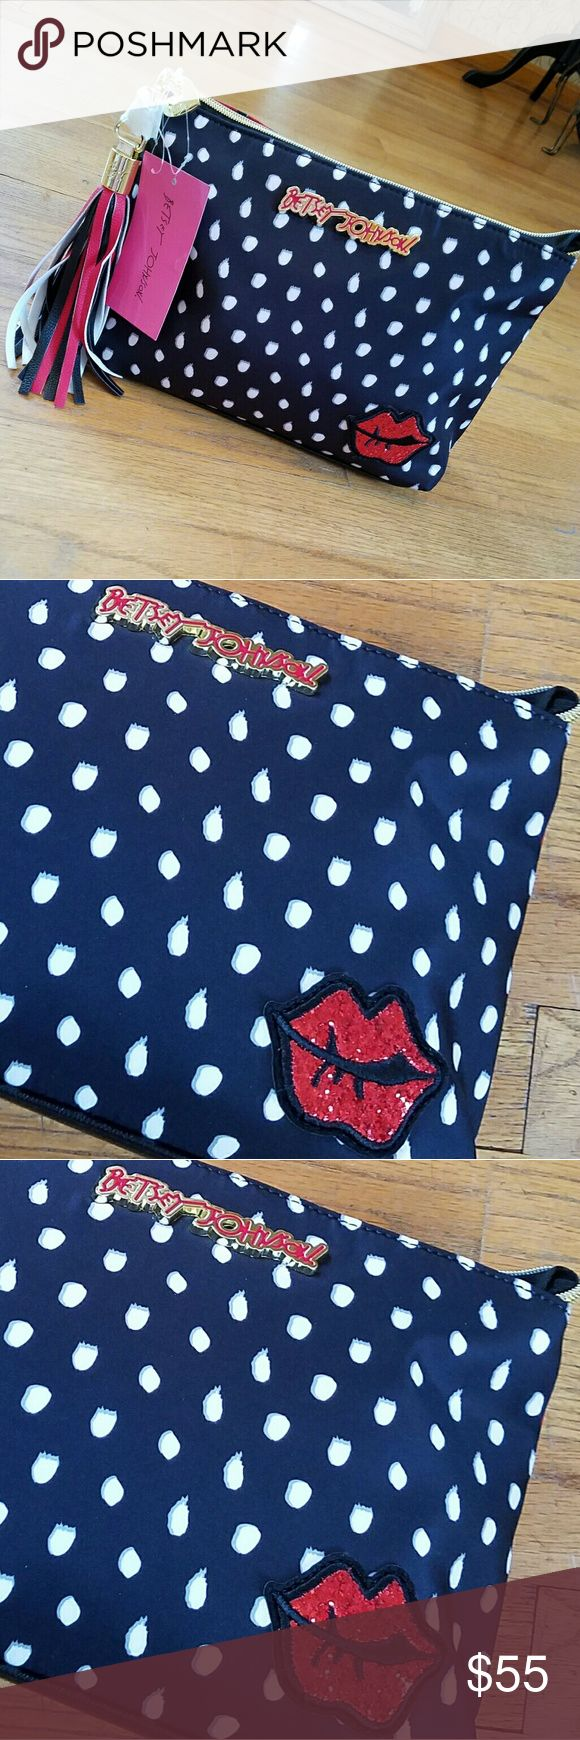 """💋NWT-BETSEY JOHNSON KISS COSMETIC BAG! 💋NWT-BETSEY JOHNSON KISS COSMETIC BAG! SUPER CUTE BAG WITH GREAT LINING INSIDE LOTS OF ROOM INSIDE WITH POCKETS AND ZIPPER. DETACHABLE TASSEL AND A GREAT DESIGN!  SUCH A BEAUTIFUL MAKE UP BAG YOU WILL LOVE IT I ABSOLUTELY LOVE MINE😍😍  SIZE: 9""""L X 12""""W  🌹NWT-BRAND NEW WITH TAGS 🌹100% AUTHENTIC 🌹SAME DAY SHIPPING 🌹OFFERS ACCEPTED THROUGH THE OFFER BUTTON 🌹NO TRADES  🚨CLOSET RULES POSTED PLEASE READ AND FOLLOW NO RUDE COMMENTS! PLEASE BE…"""